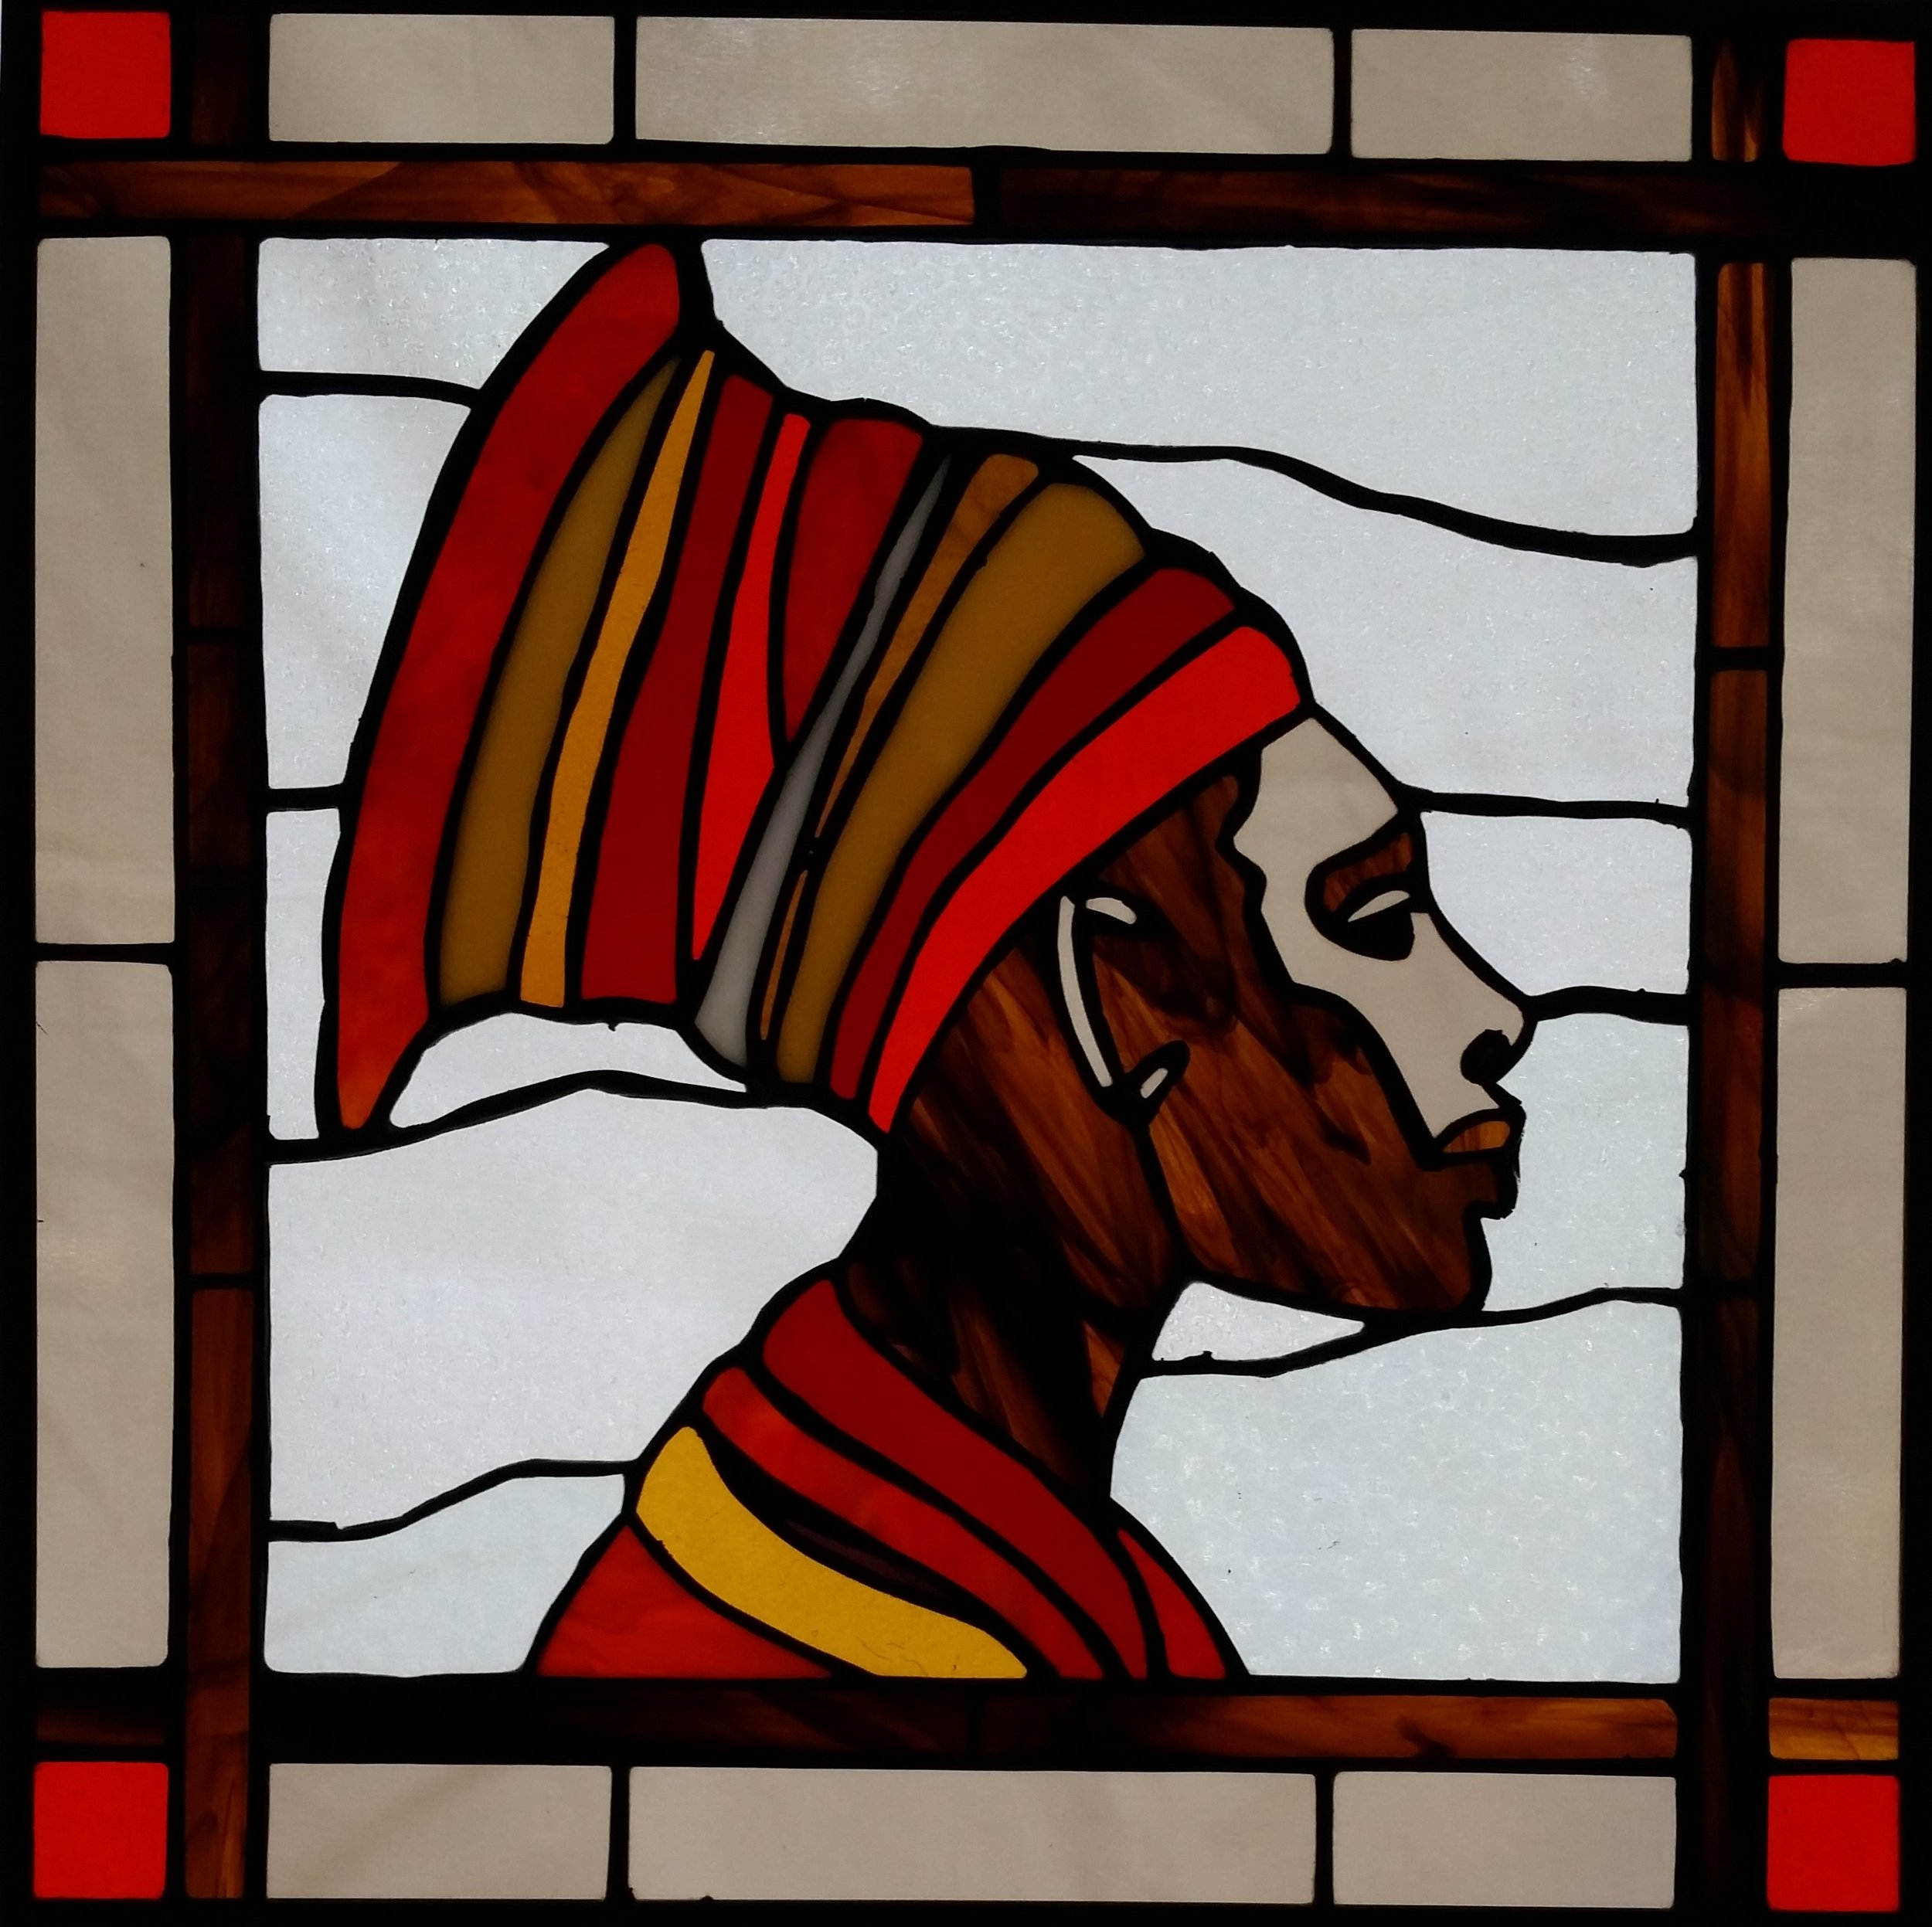 stained glass image of woman in headwrap by Arvid Lee